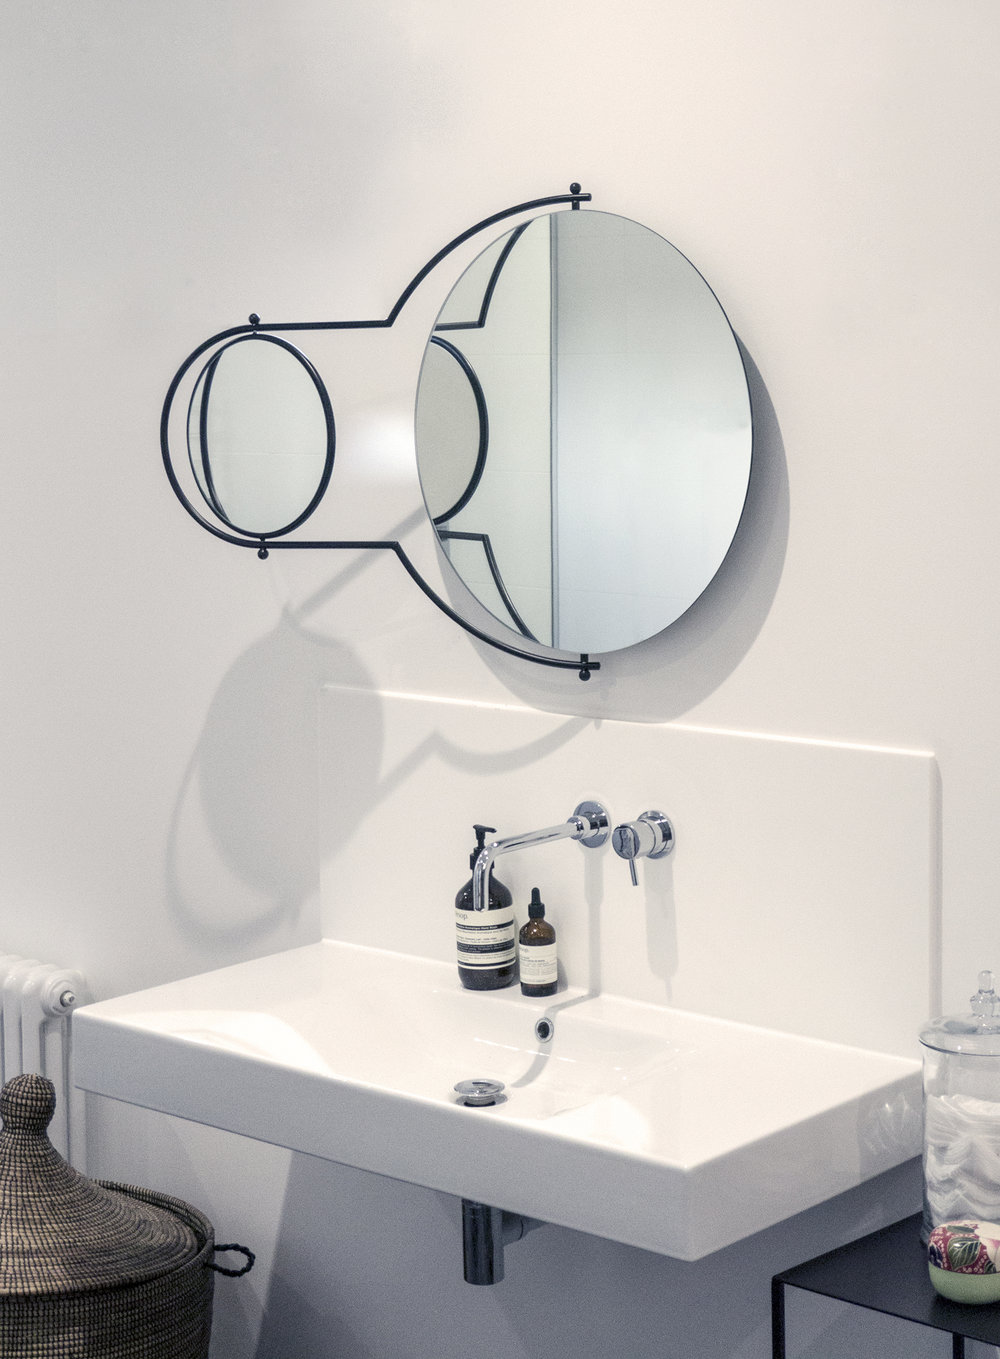 OMK 'Orbit' Mirror - Designed 1981